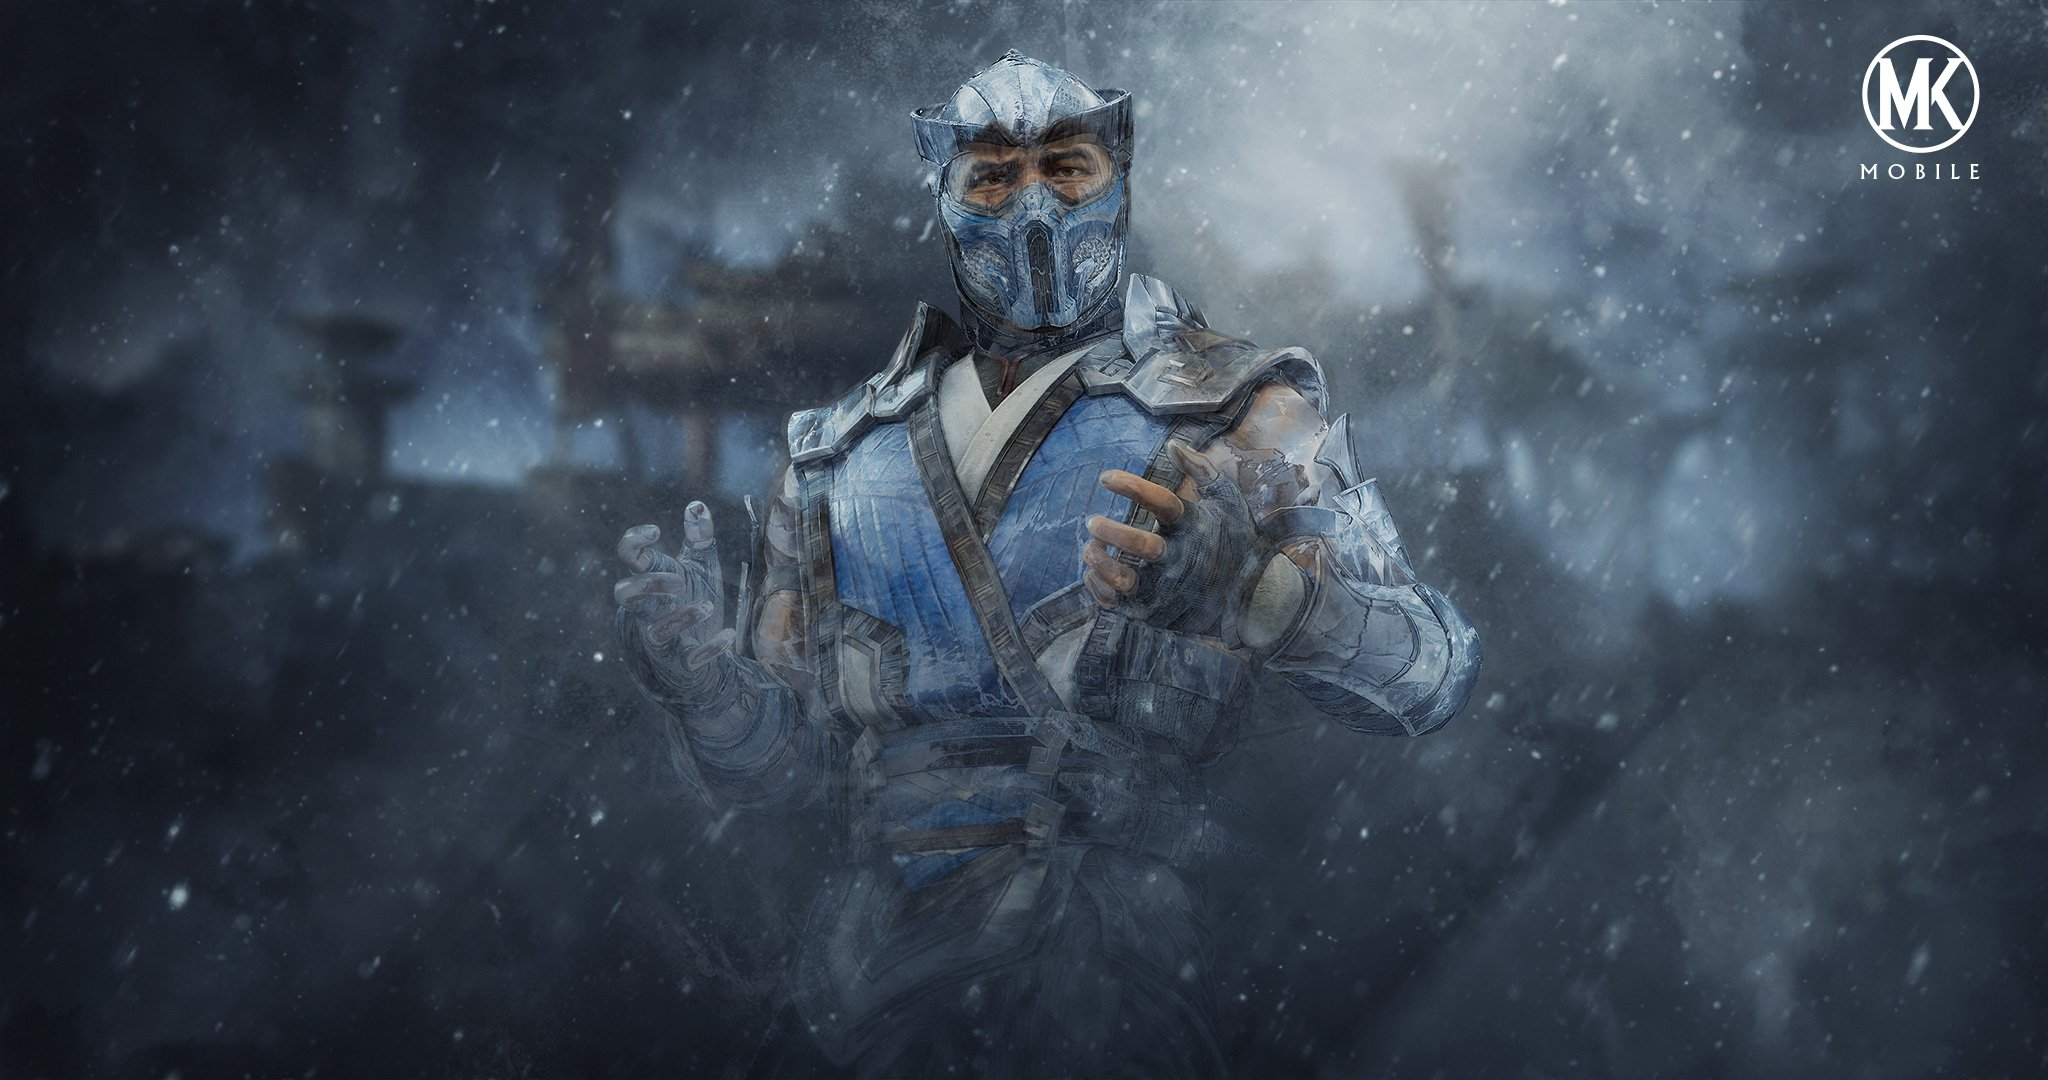 MK:Mobile background - Sub-Zero and Blizzard